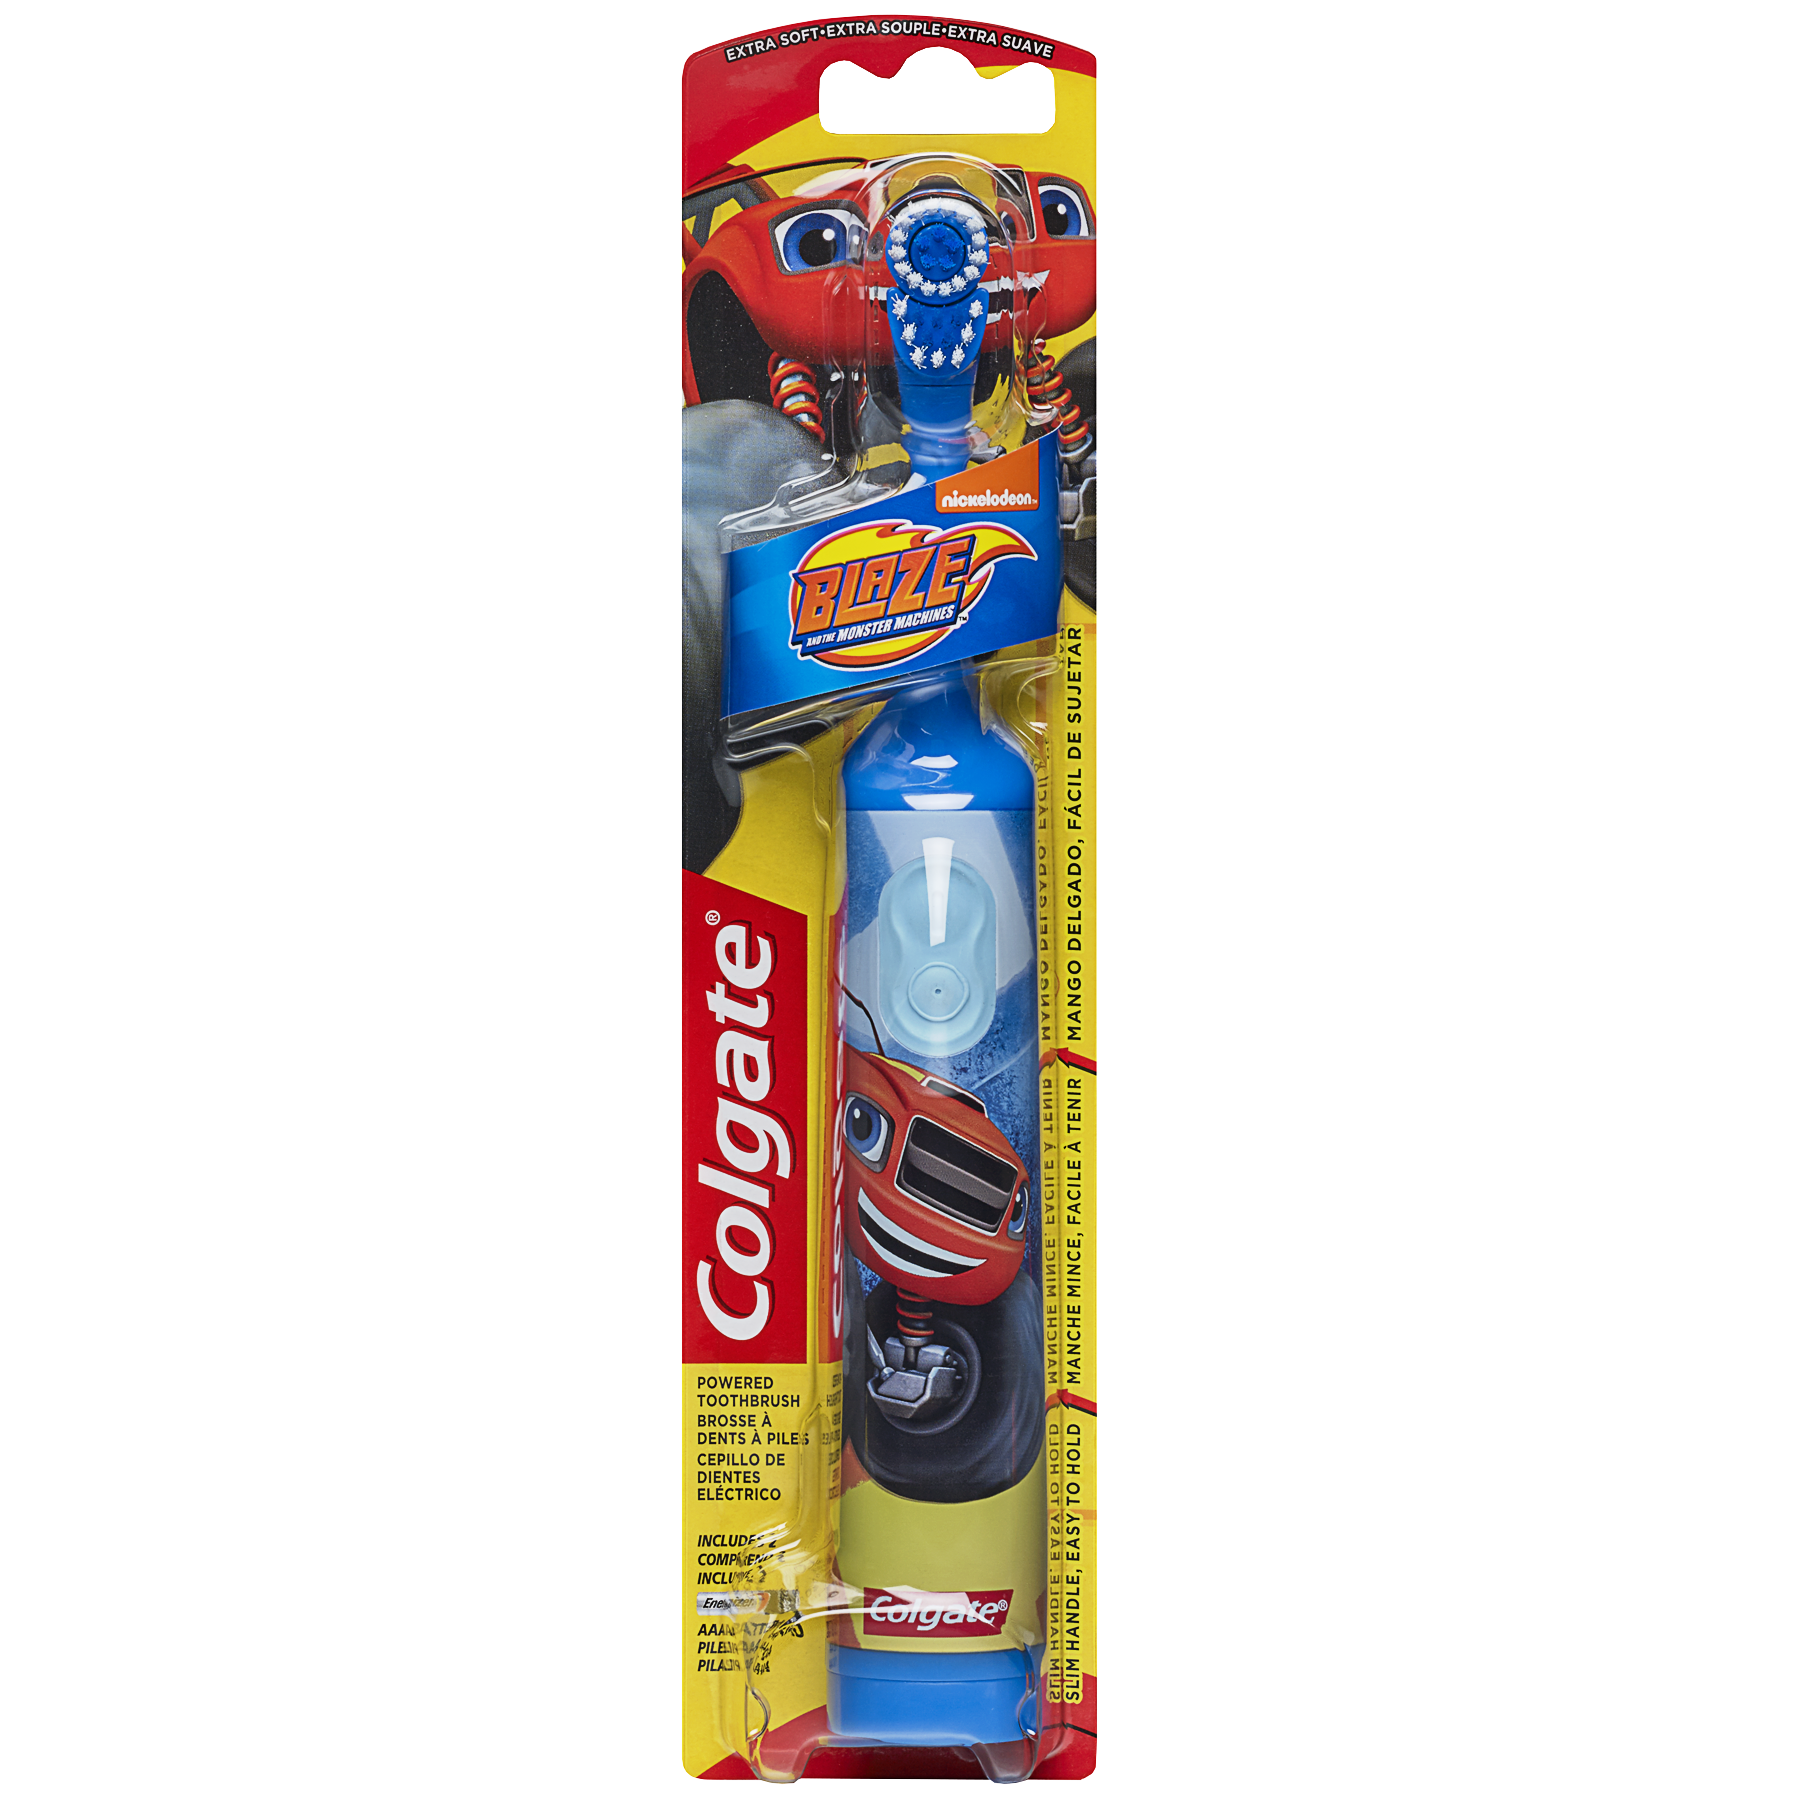 Colgate Kids Powered Toothbrush Blaze and the Monster Machines